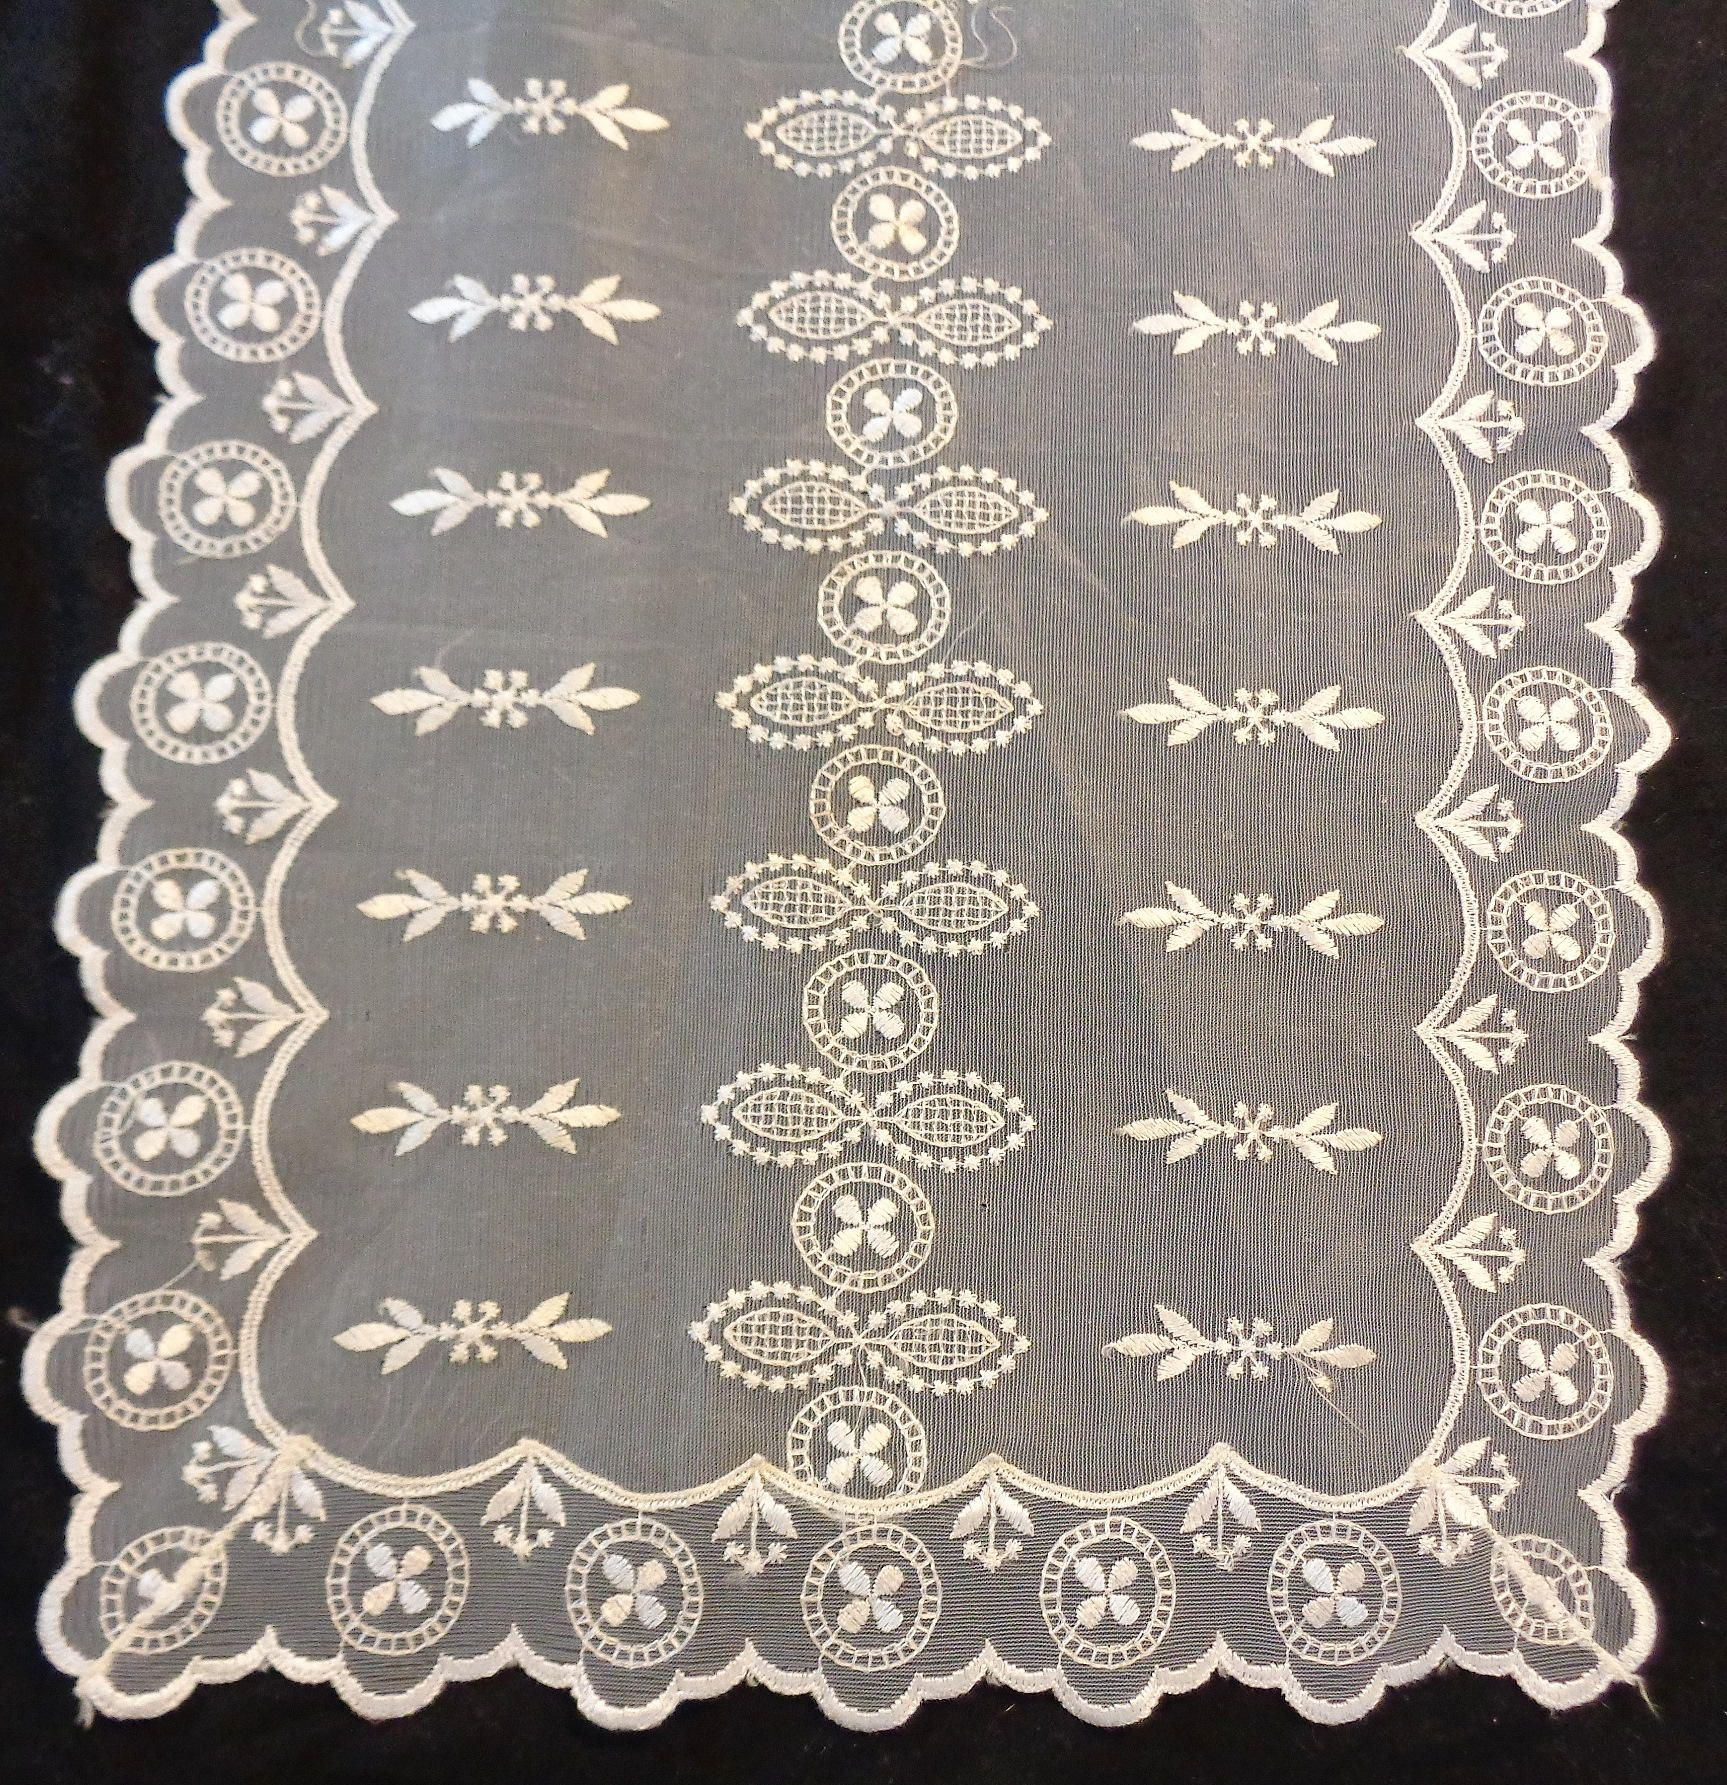 Vintage White Net Lace And Embroidery Dresser Scarf Table Runner 40 X 14 1 4 Large C 1950 S